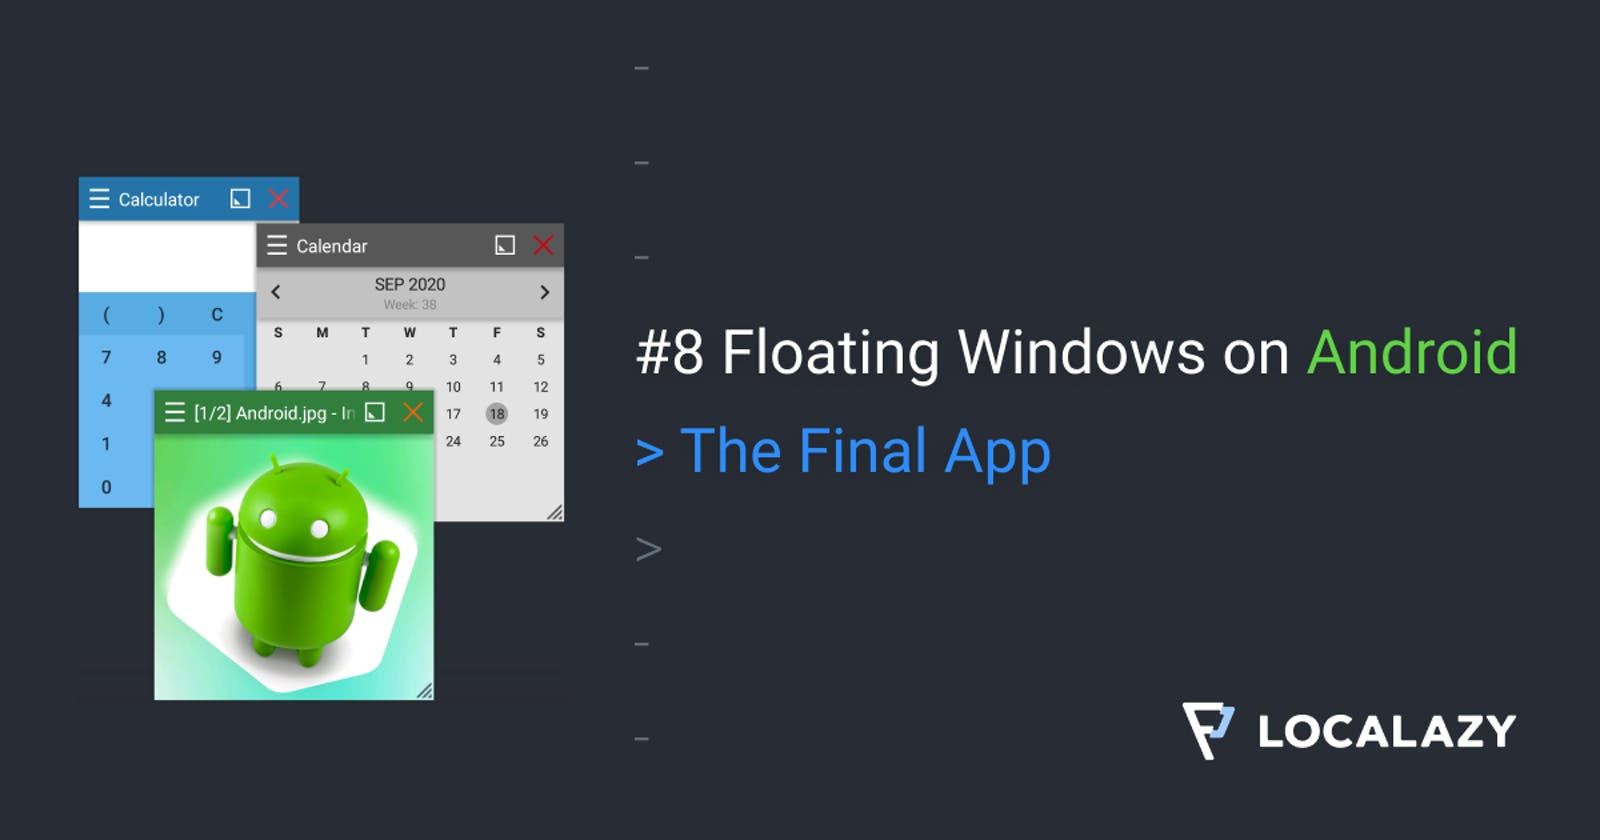 #8 Floating Windows on Android: The Final App